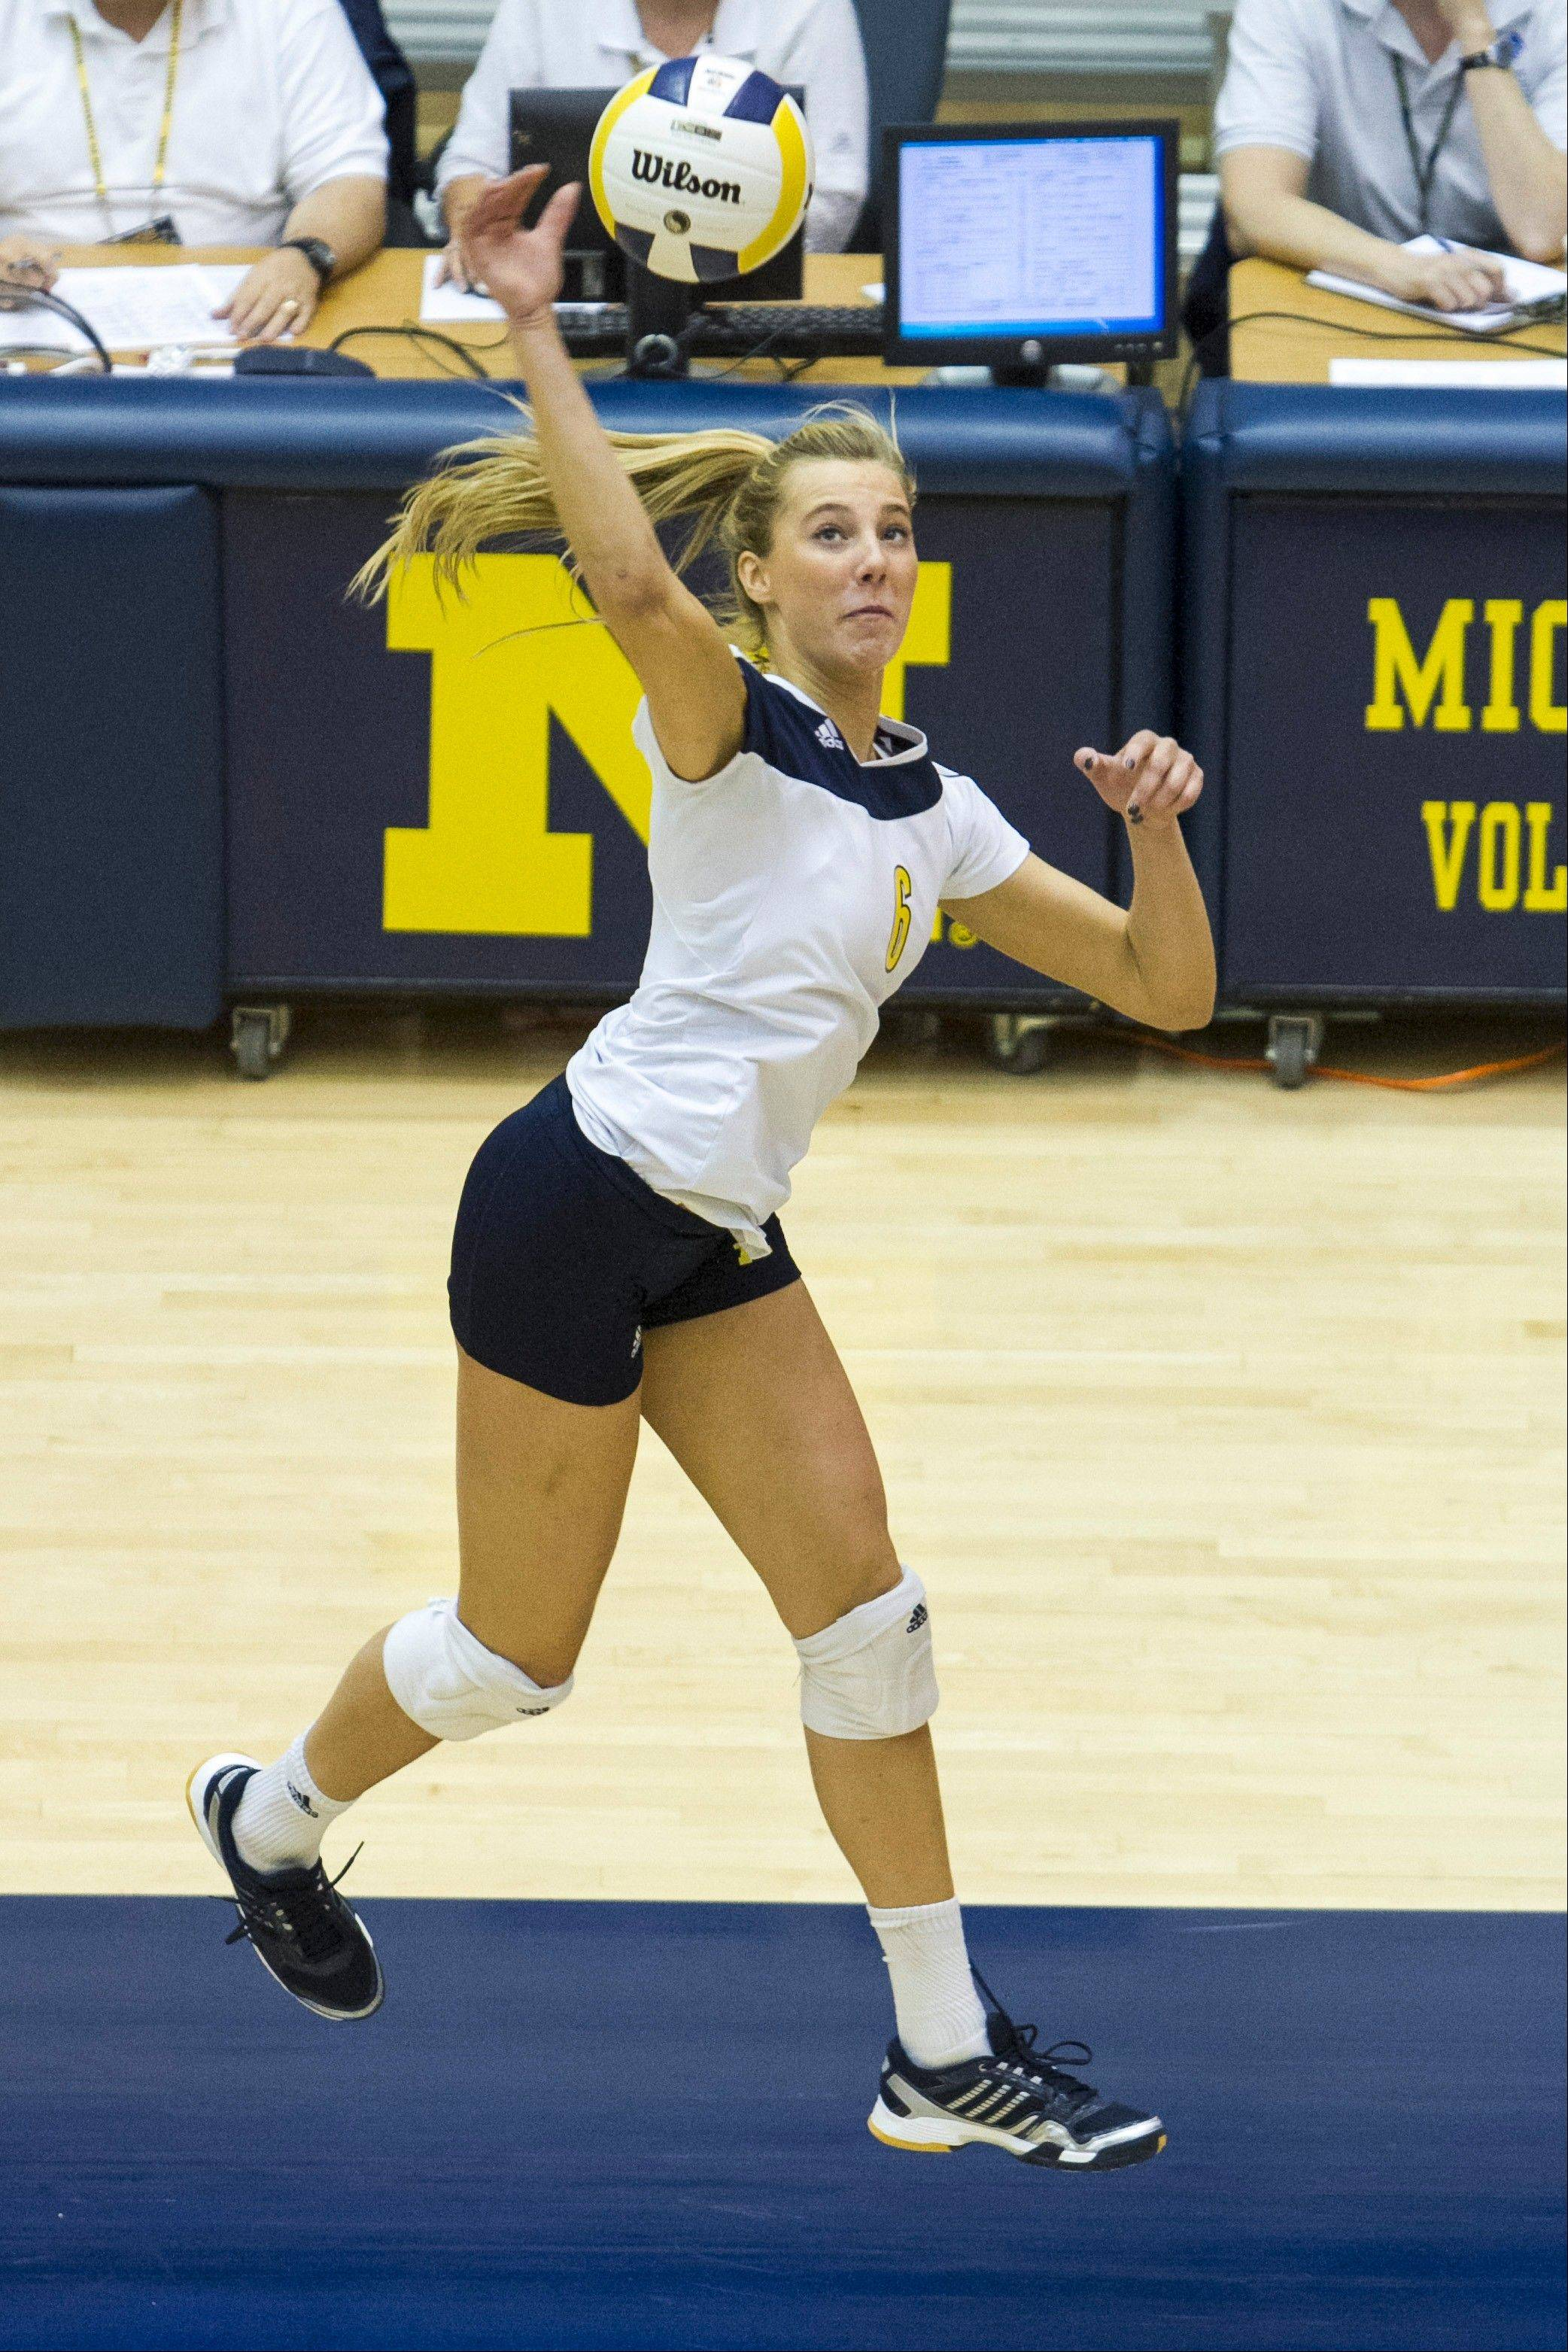 University of Michigan volleyball player Ally Davis, a standout at Hinsdale Central, is back competing again after serving as a bone marrow donor last year for her older sister, Ashley.